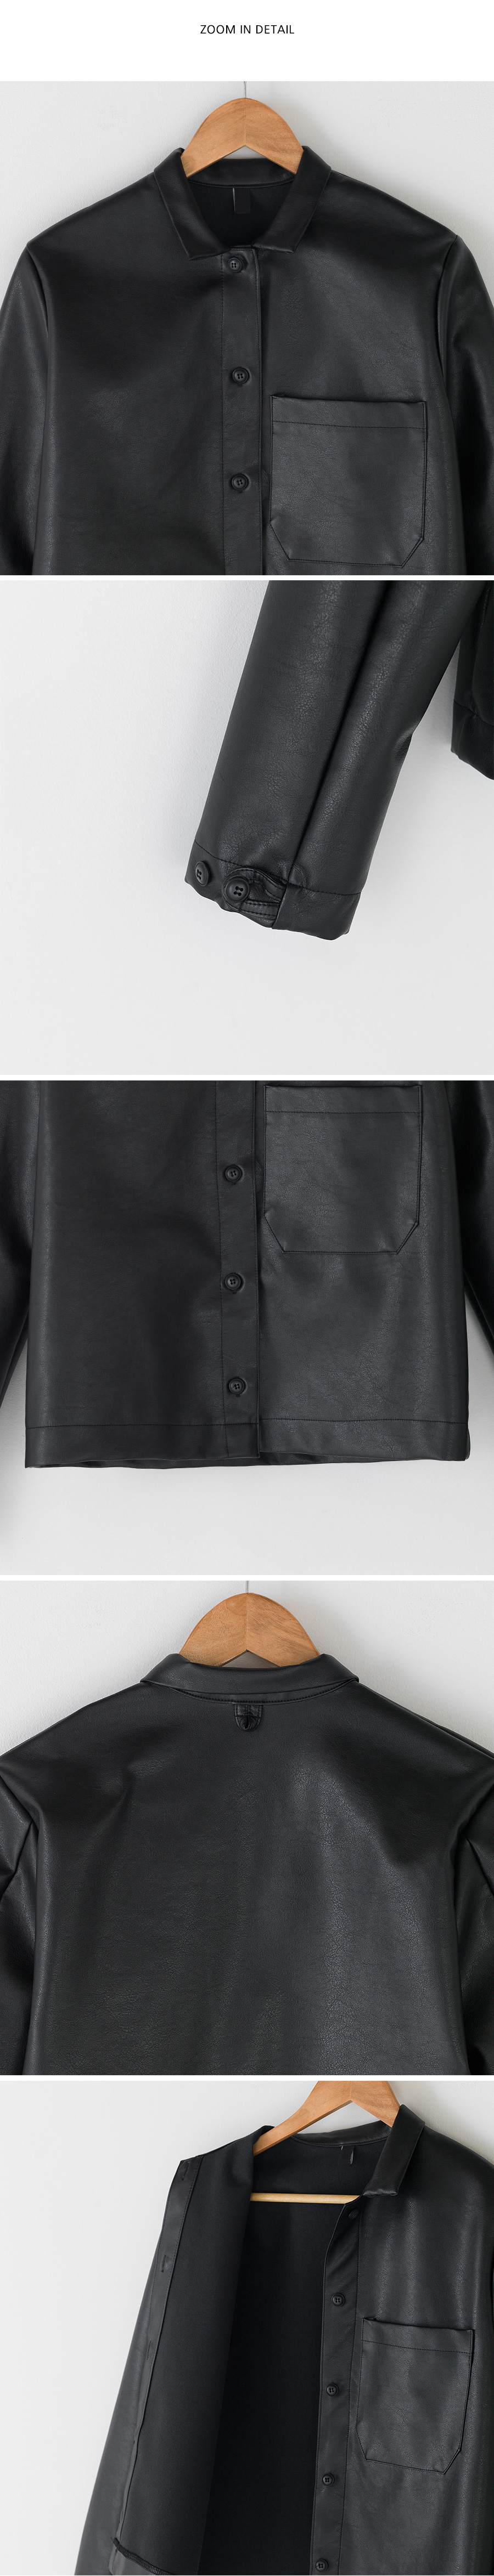 standard fit leather jacket